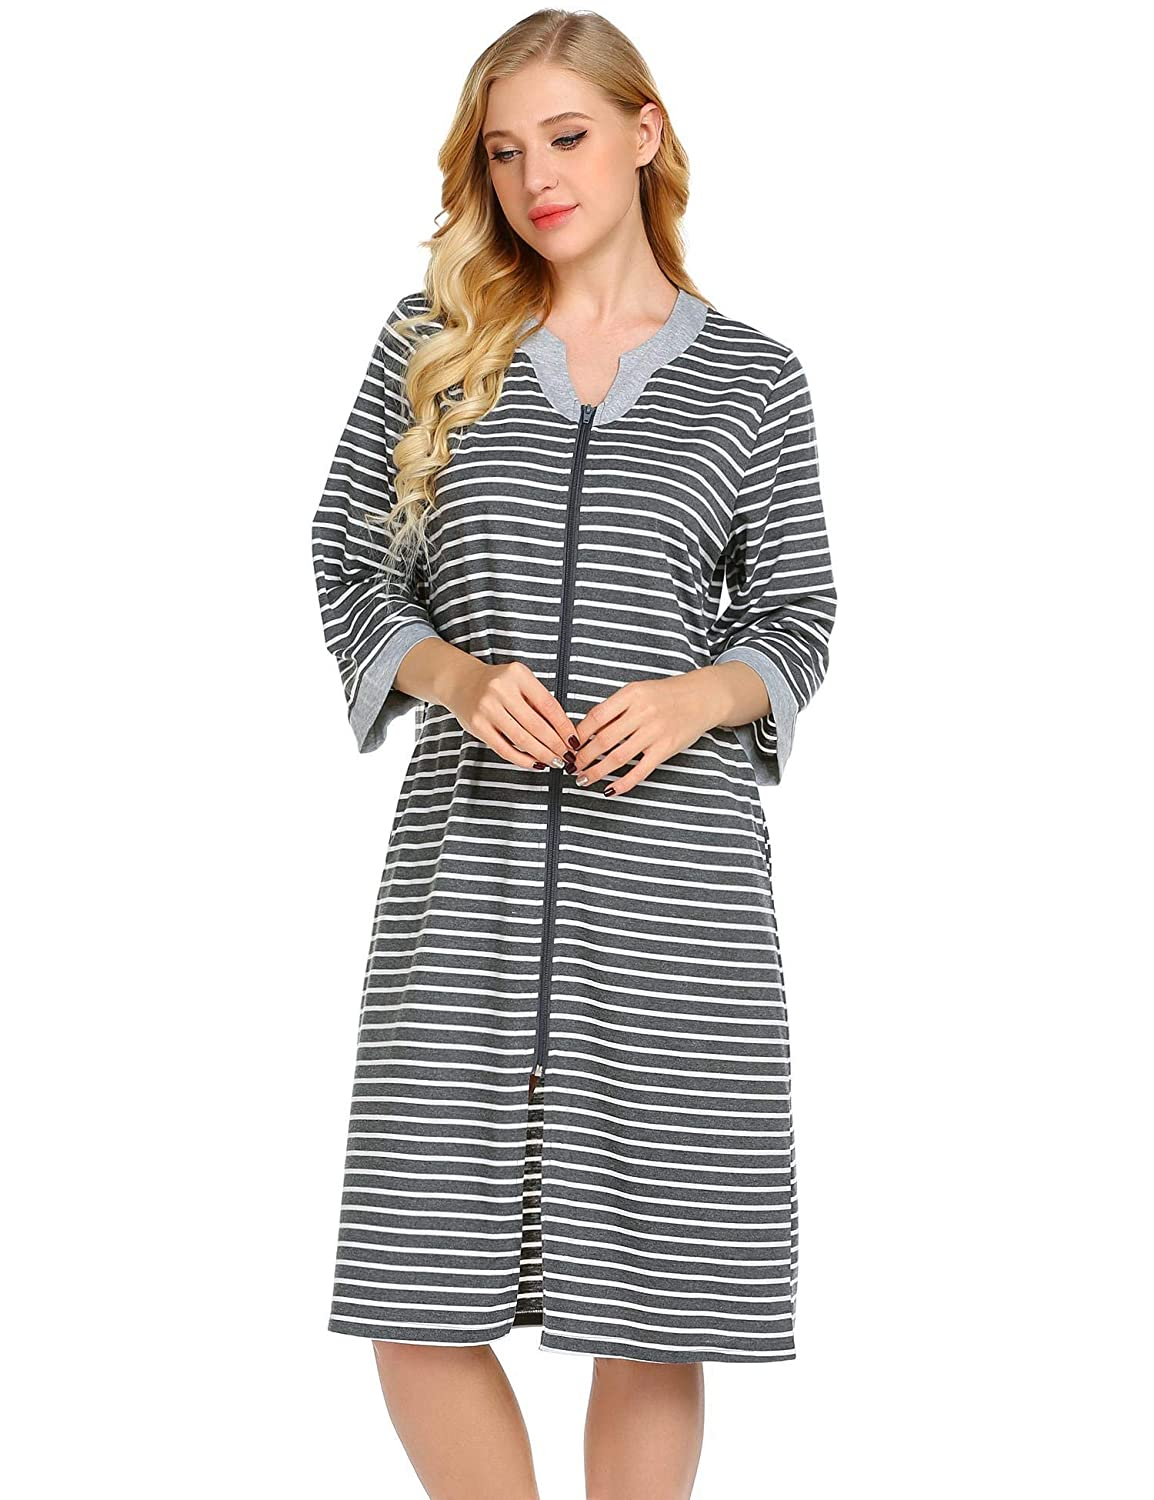 a6206bb1a2 Skylin Long Zipper Nightgown Robes Women Full Length House Coat with  Pockets Striped Sleepwear S-XXL at Amazon Women s Clothing store